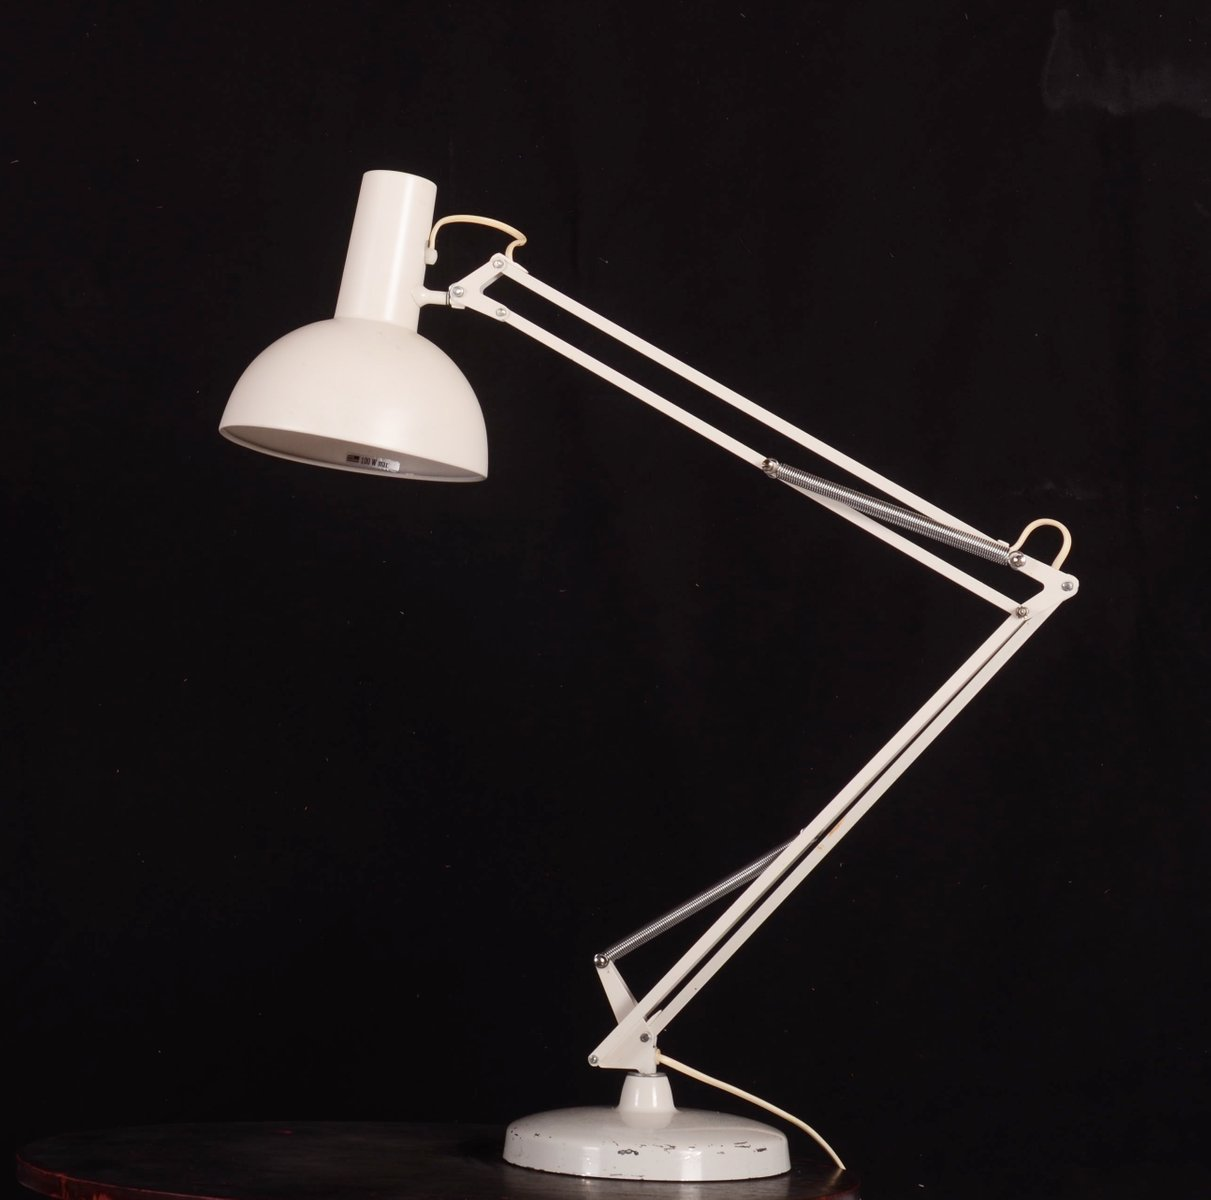 steel table lamp by louis poulsen 1970s for sale at pamono. Black Bedroom Furniture Sets. Home Design Ideas